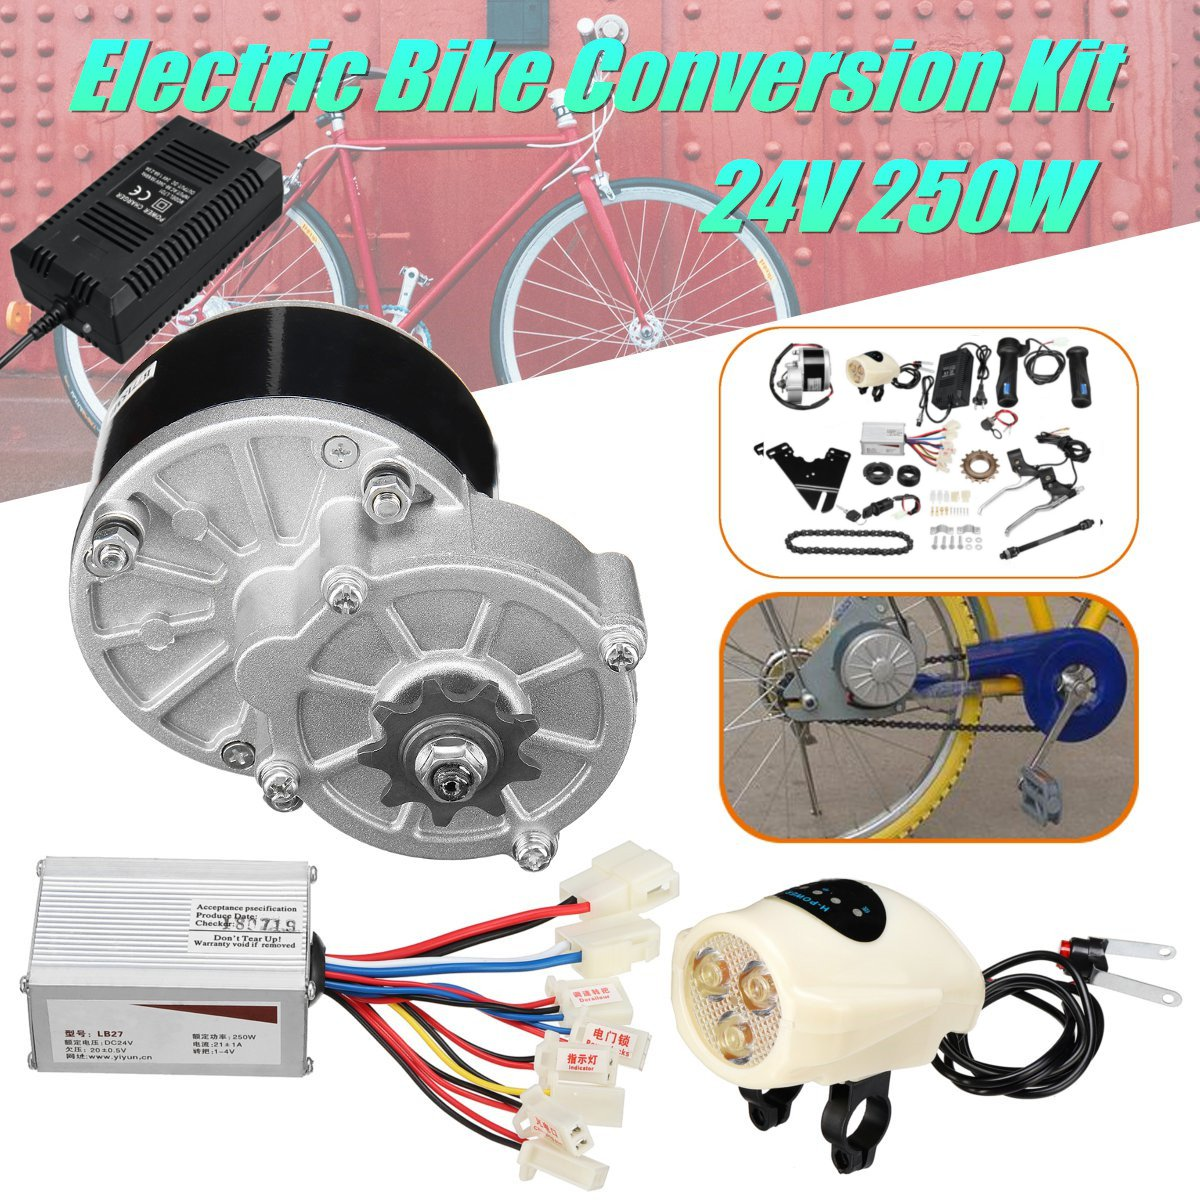 24V 250W Motor Controller Electric Bike Kit Electric Bicycle Conversion Kit for Ordinary Common Electric Bicycle  Accessories24V 250W Motor Controller Electric Bike Kit Electric Bicycle Conversion Kit for Ordinary Common Electric Bicycle  Accessories